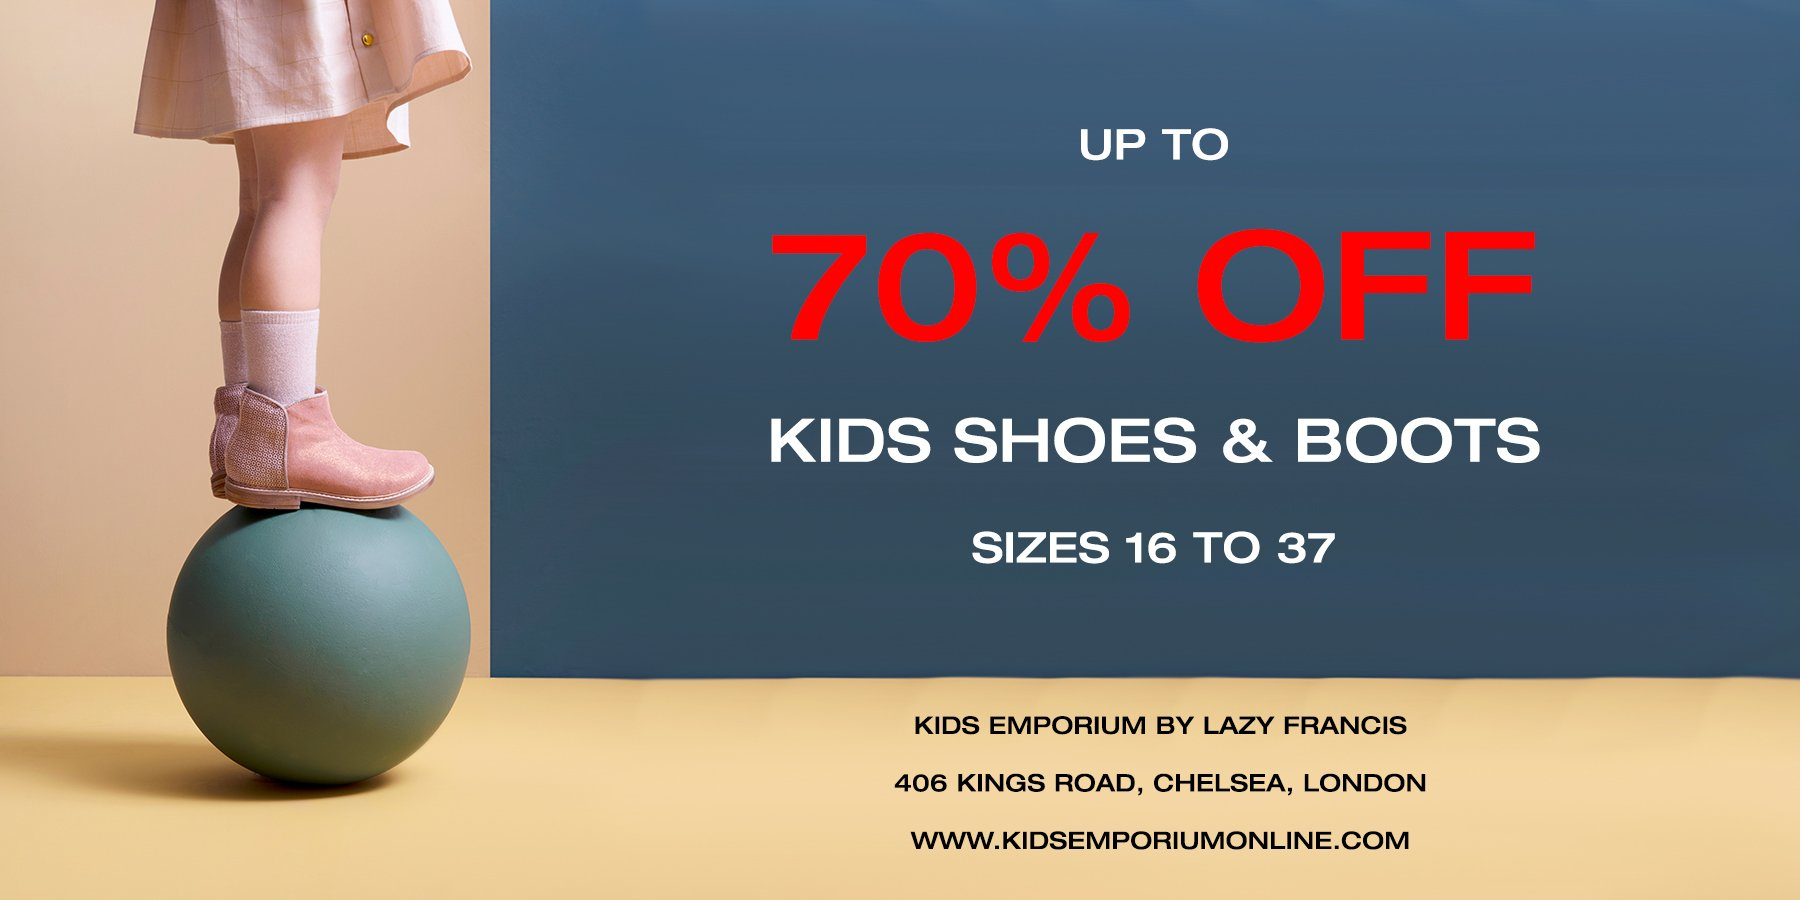 50% OFF ALL kids shoes from famous children shoe brands Angulus, Pom D'Api, Bobux, Angels Face, Cienta, Lazy Francis, Boys Boutique